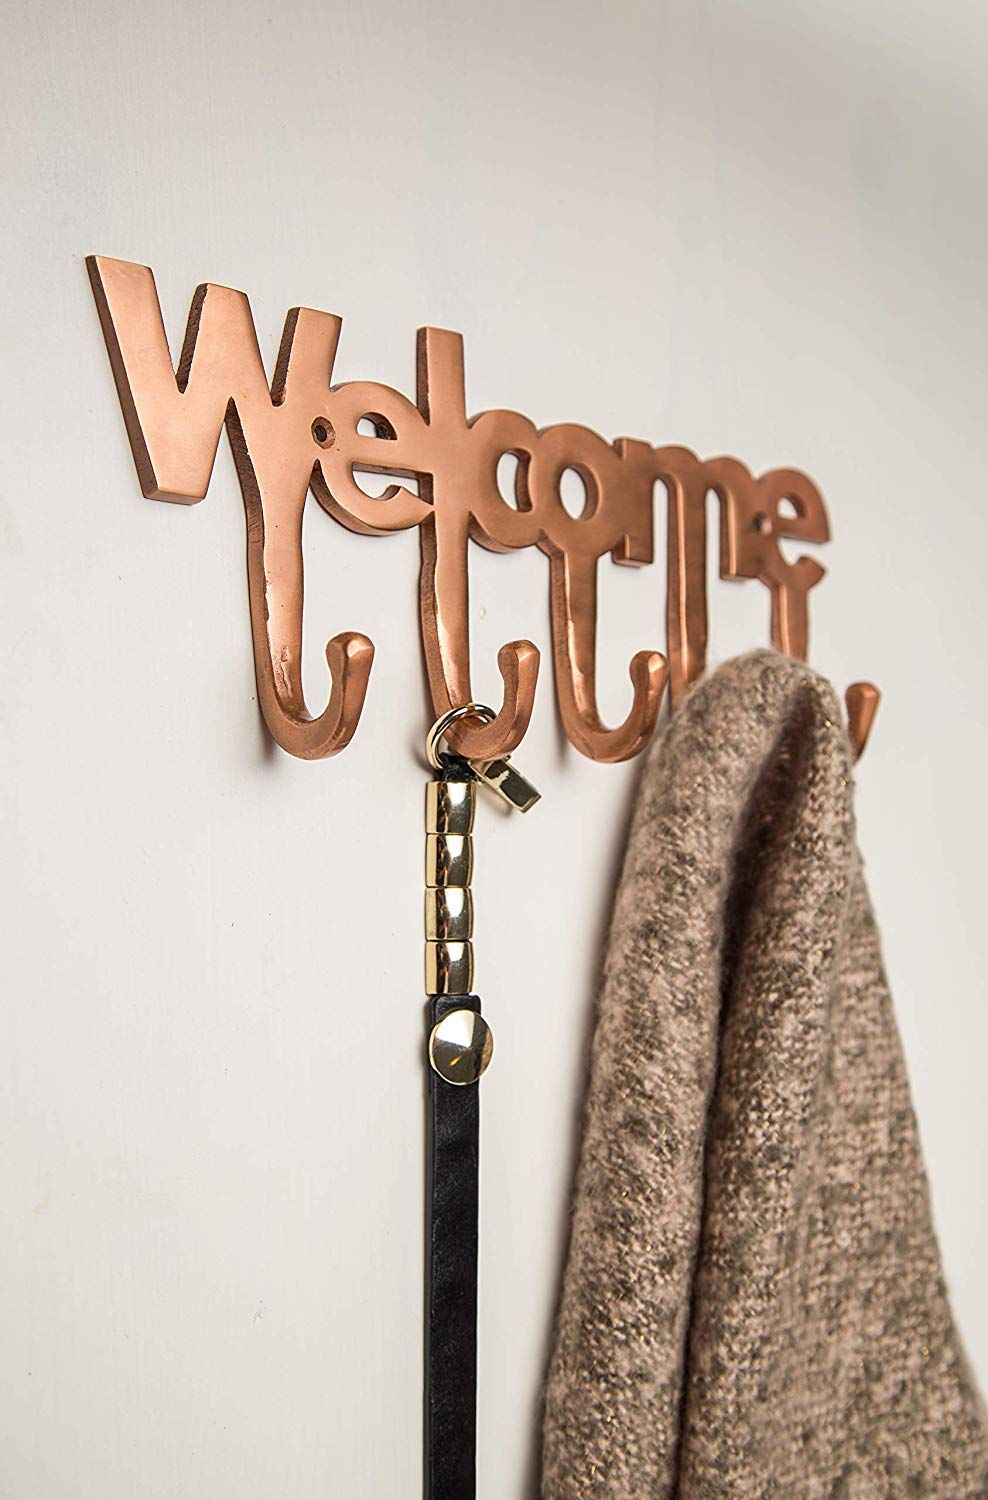 Welcome Aluminium Key Holder For Wall Wall Key Holder Mail And